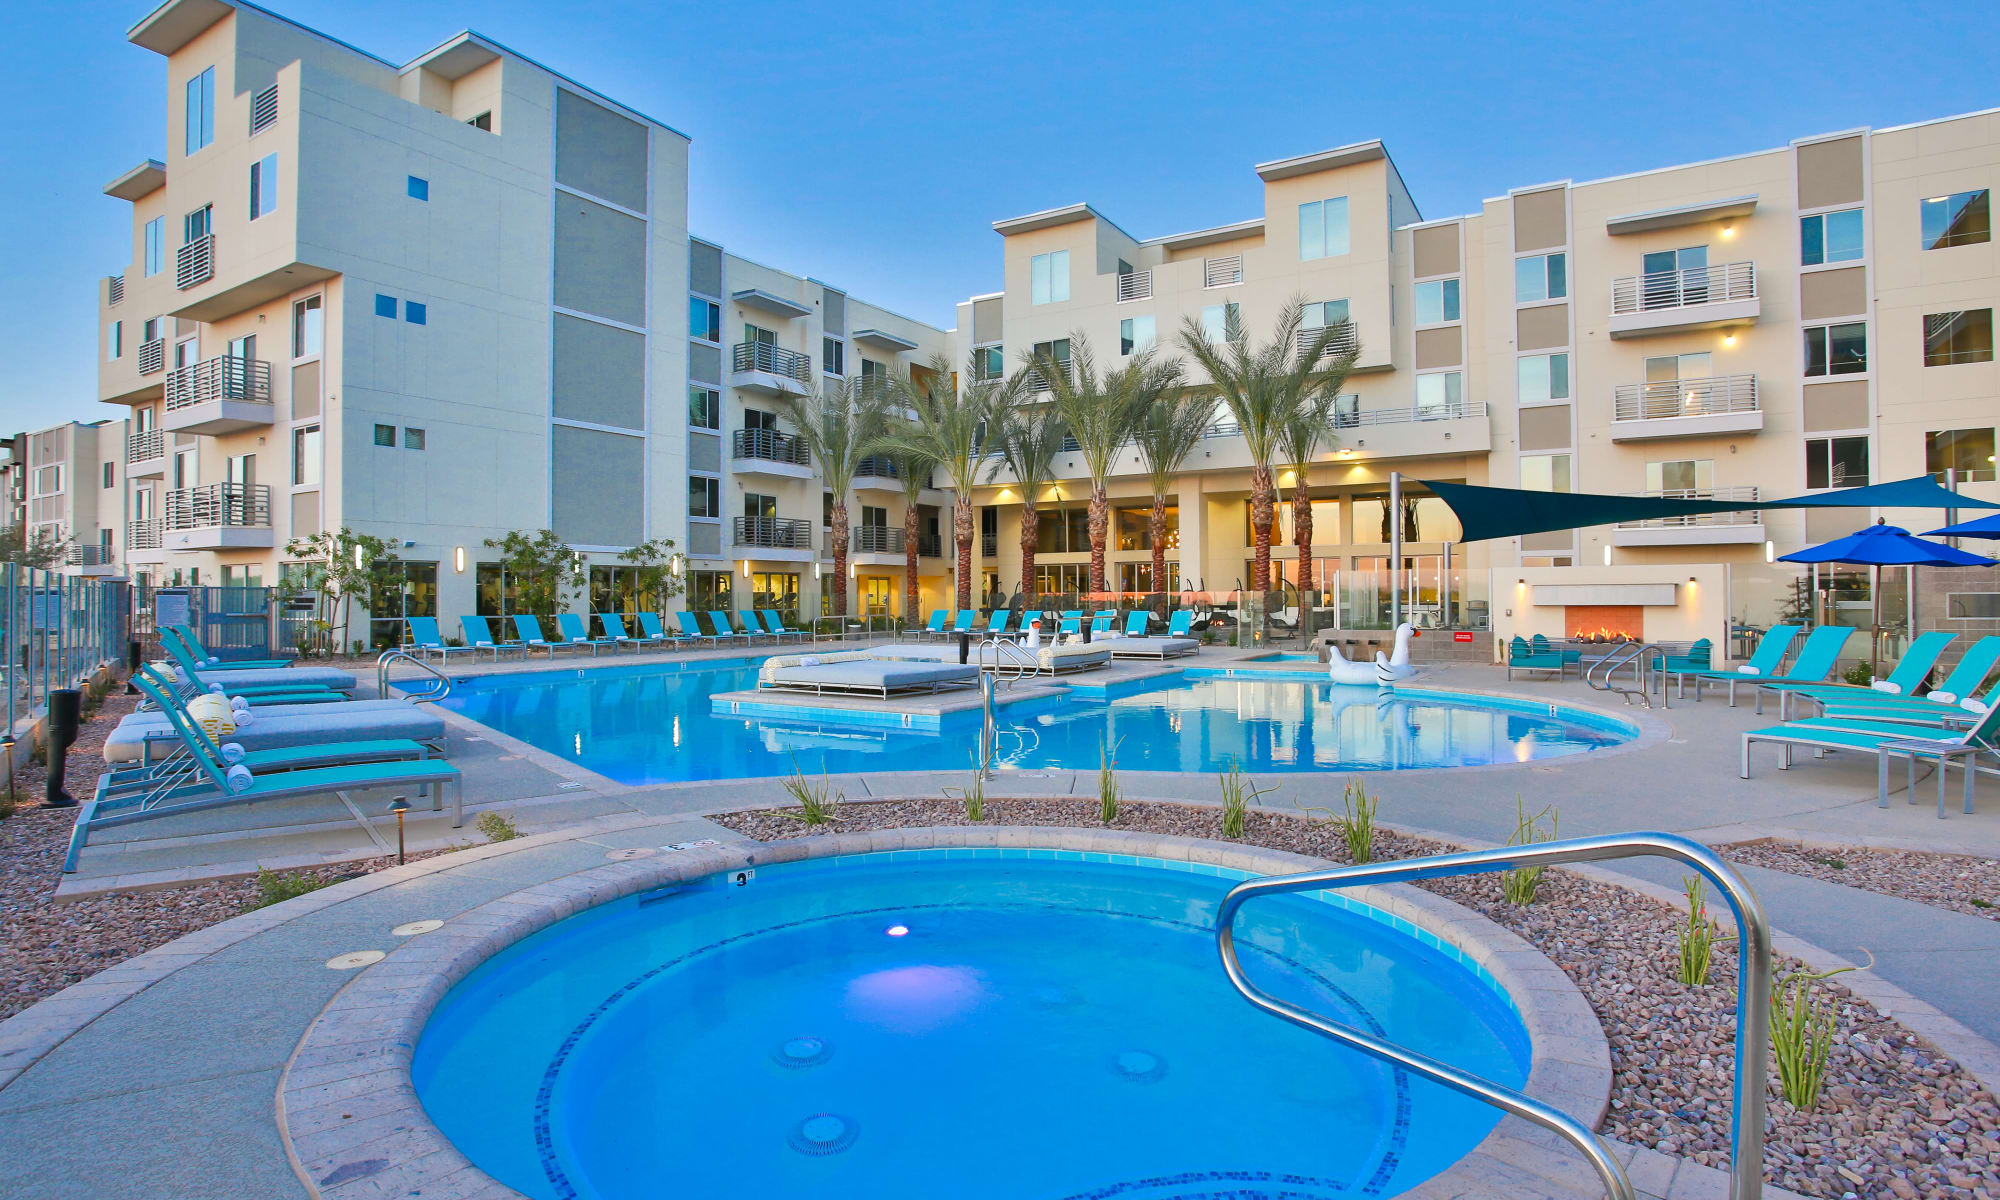 Apartments at Slate Scottsdale in Phoenix, Arizona